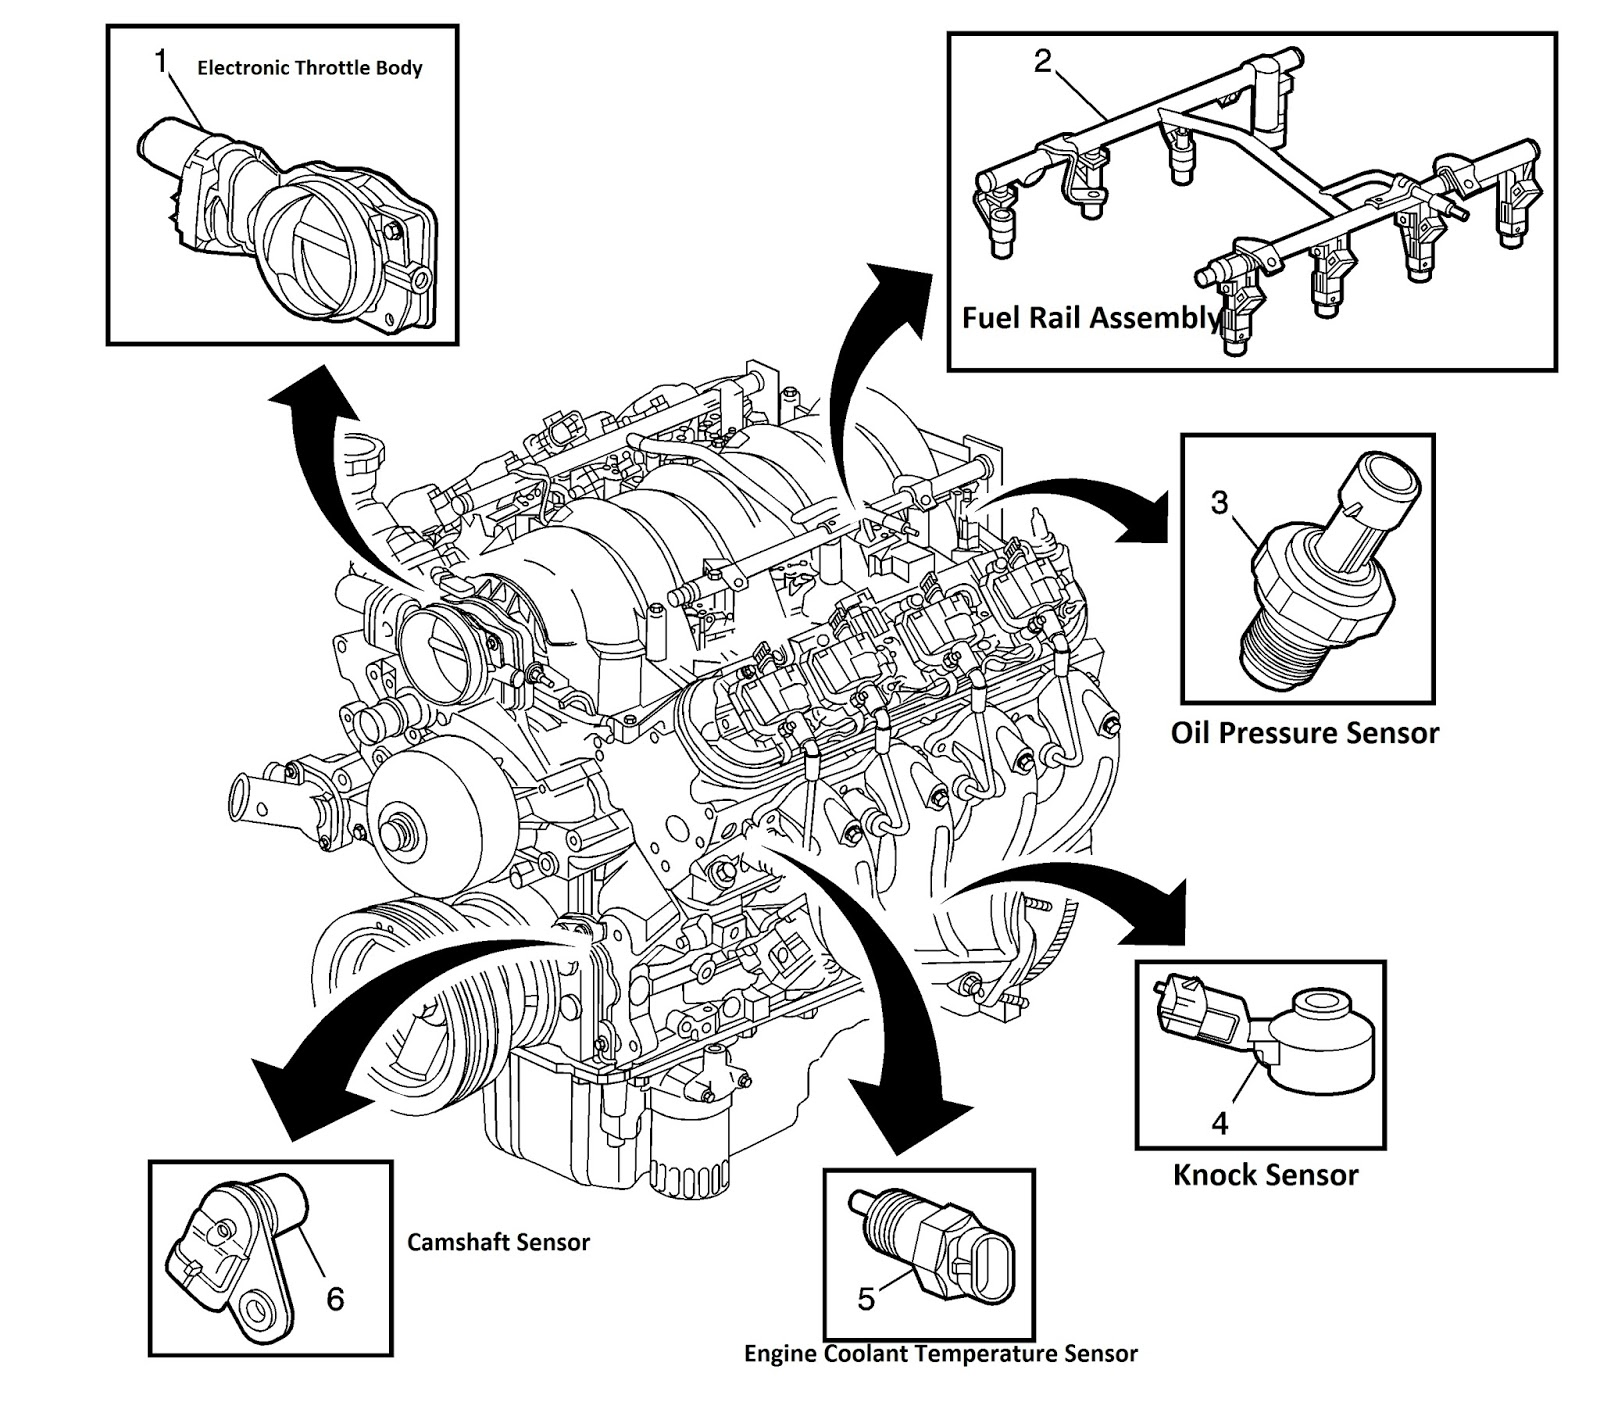 [DIAGRAM] 2015 Ls3 Engine Wiring Diagram FULL Version HD